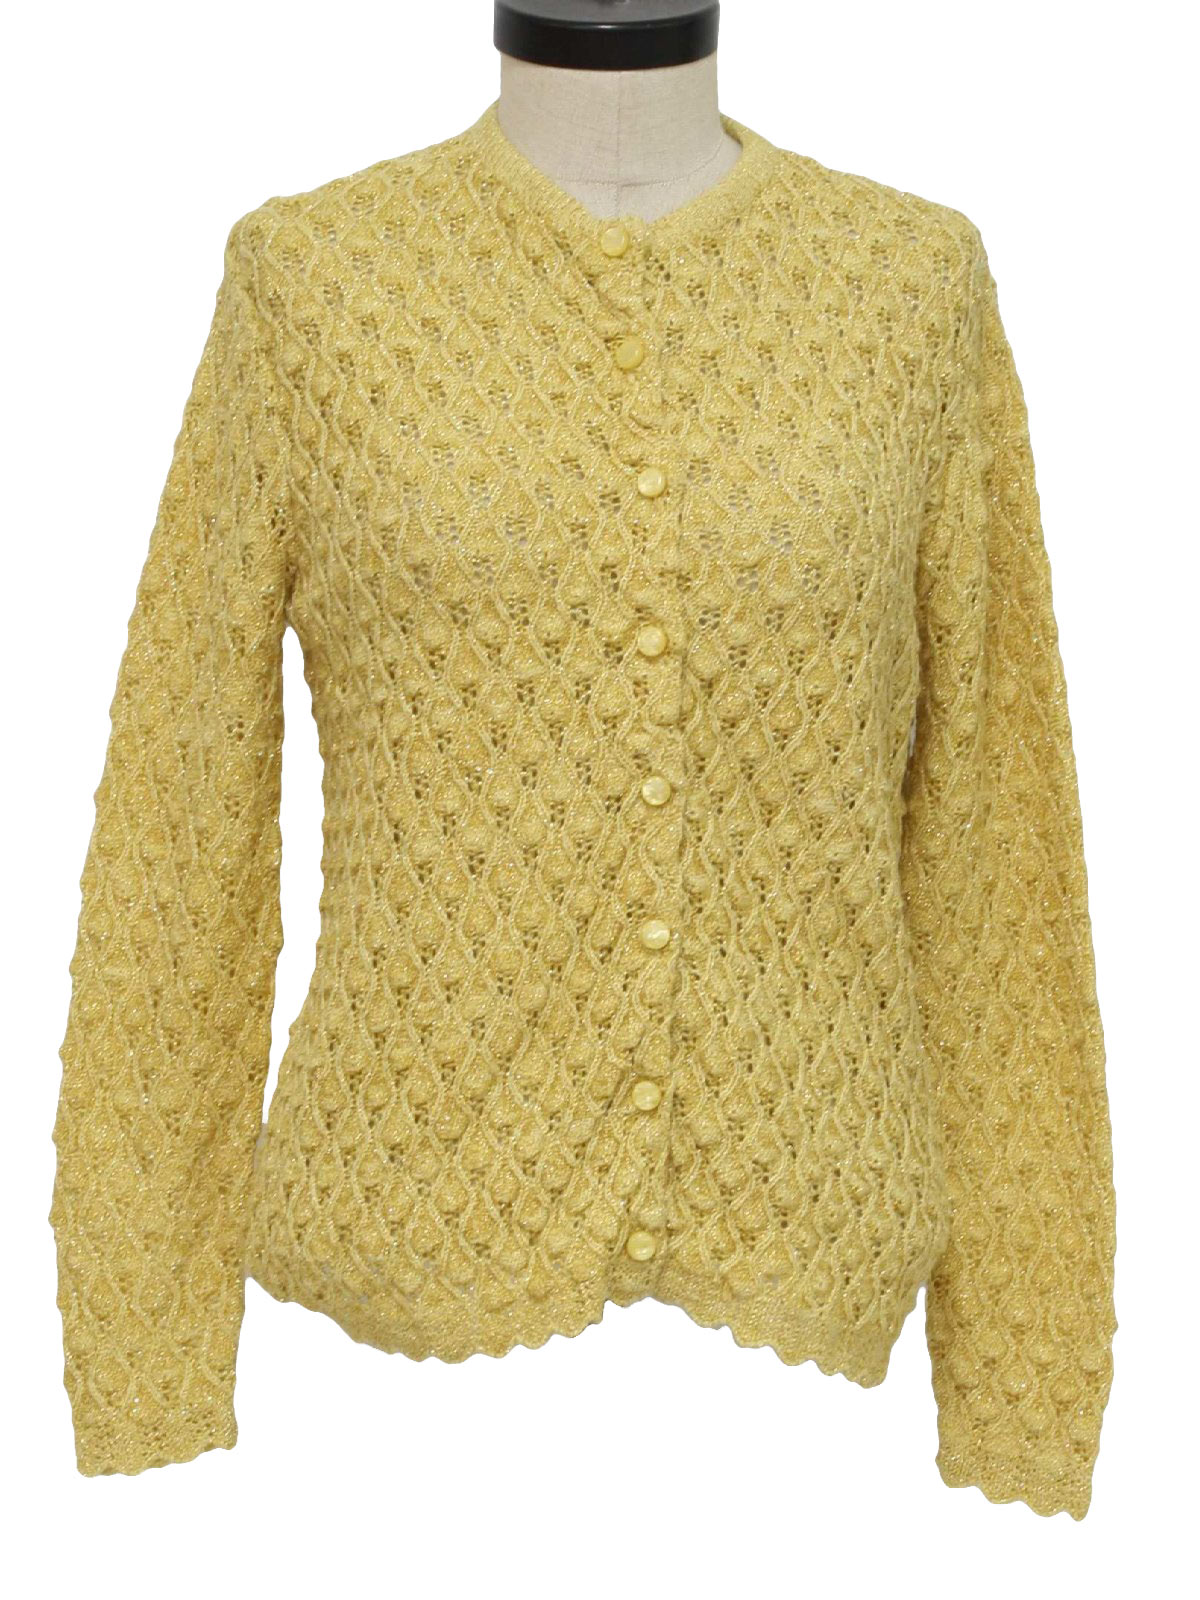 British Vogue 1960s Vintage Caridgan Sweater: 60s -British Vogue ...